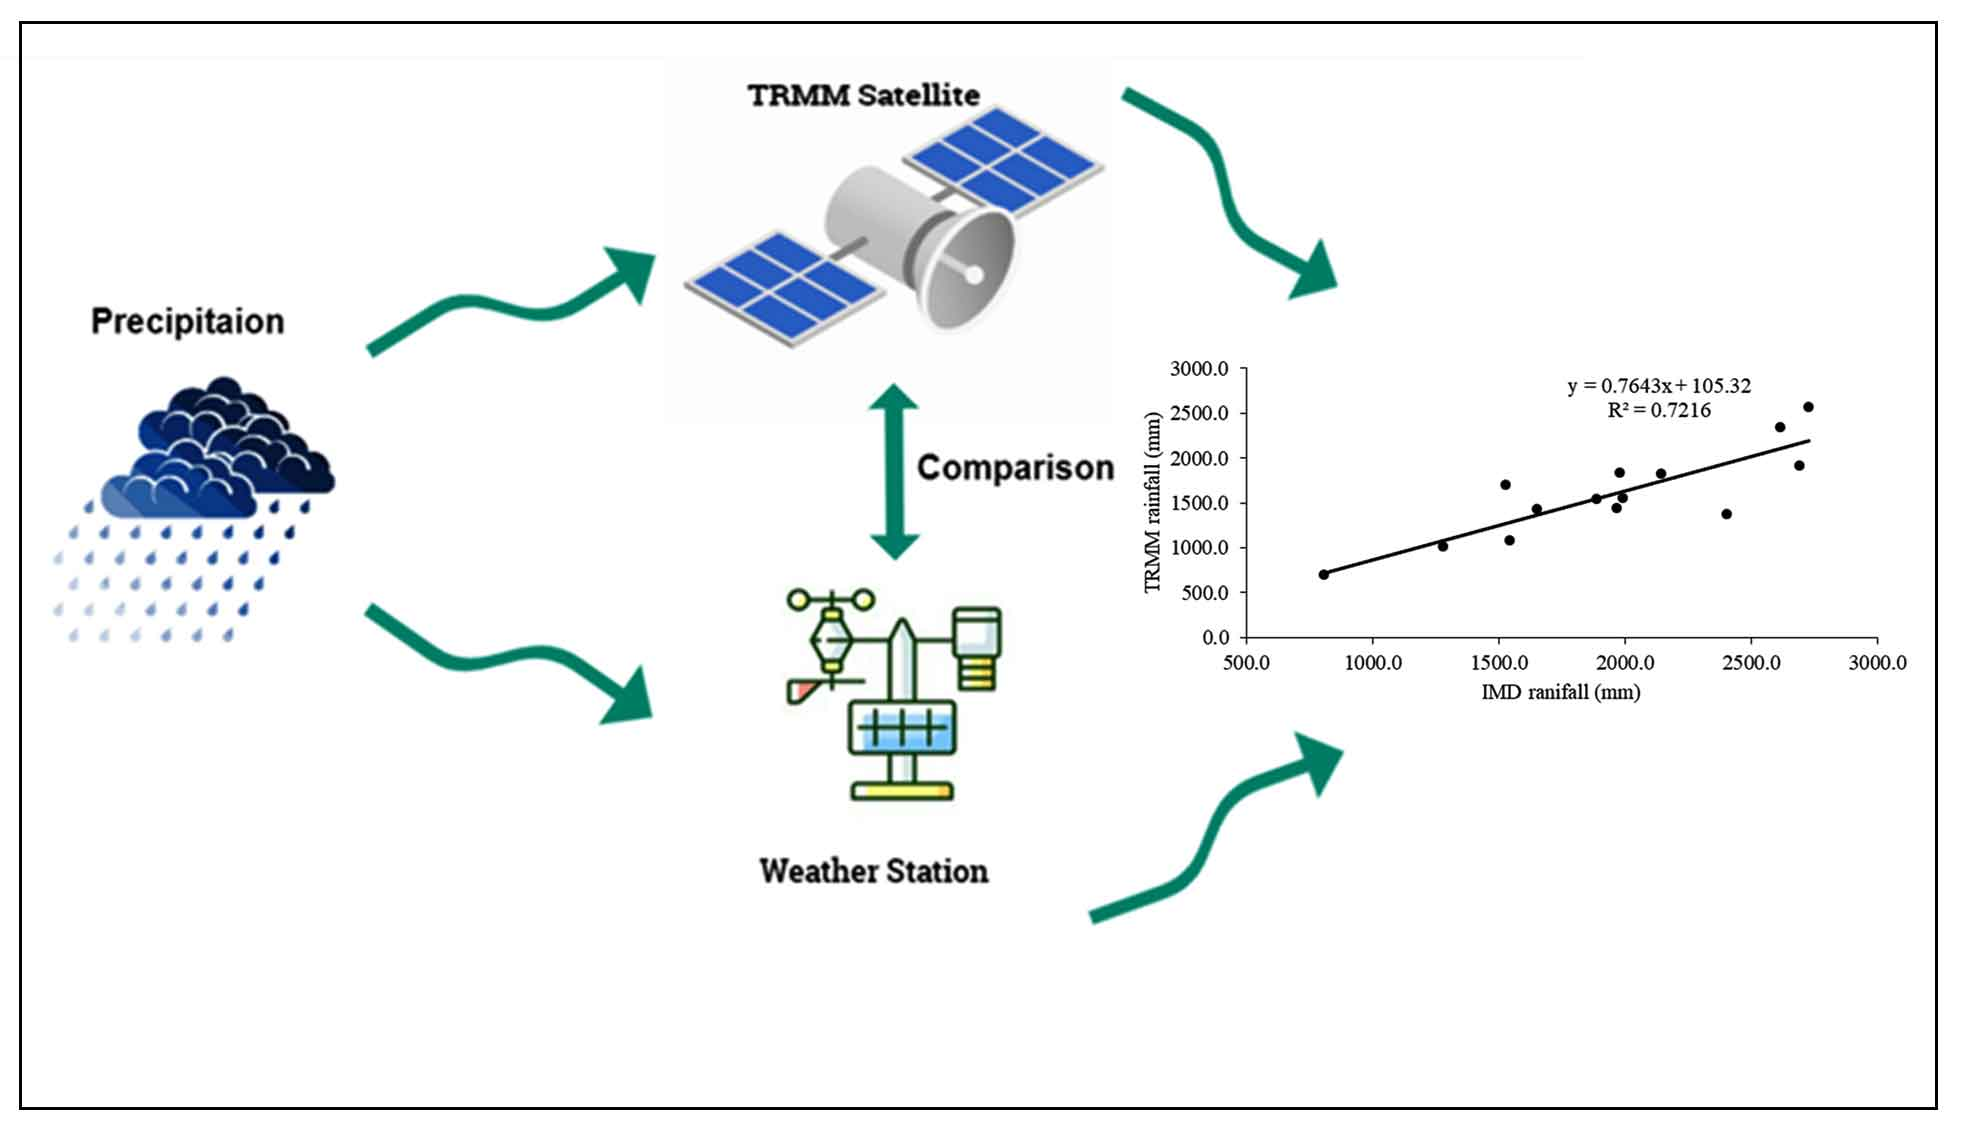 Exploring Temporal Rainfall Variability and Trends Over a Tropical Region Using Tropical Rainfall Measurement Mission (TRMM) and Observatory Data